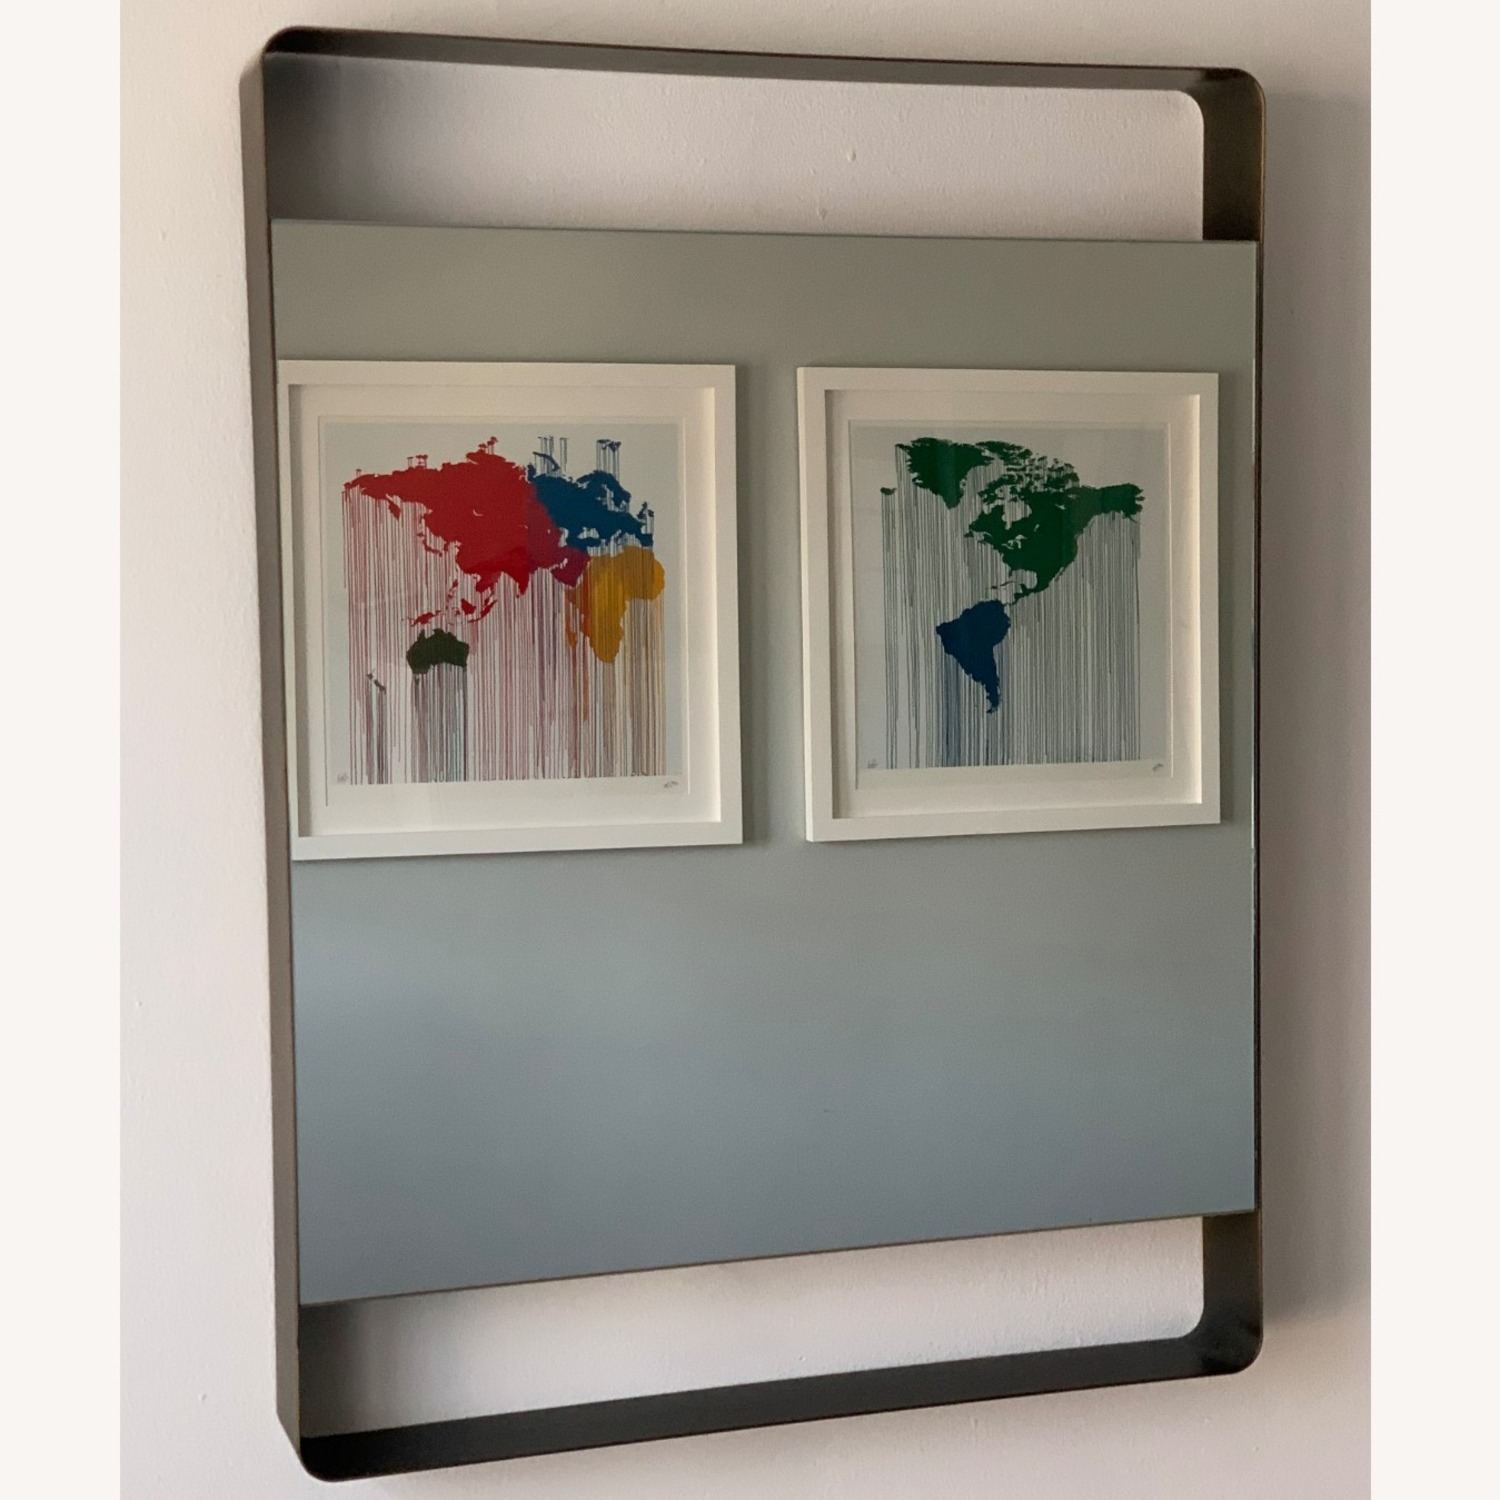 Crate & Barrel Colby Brass Mirror - image-9